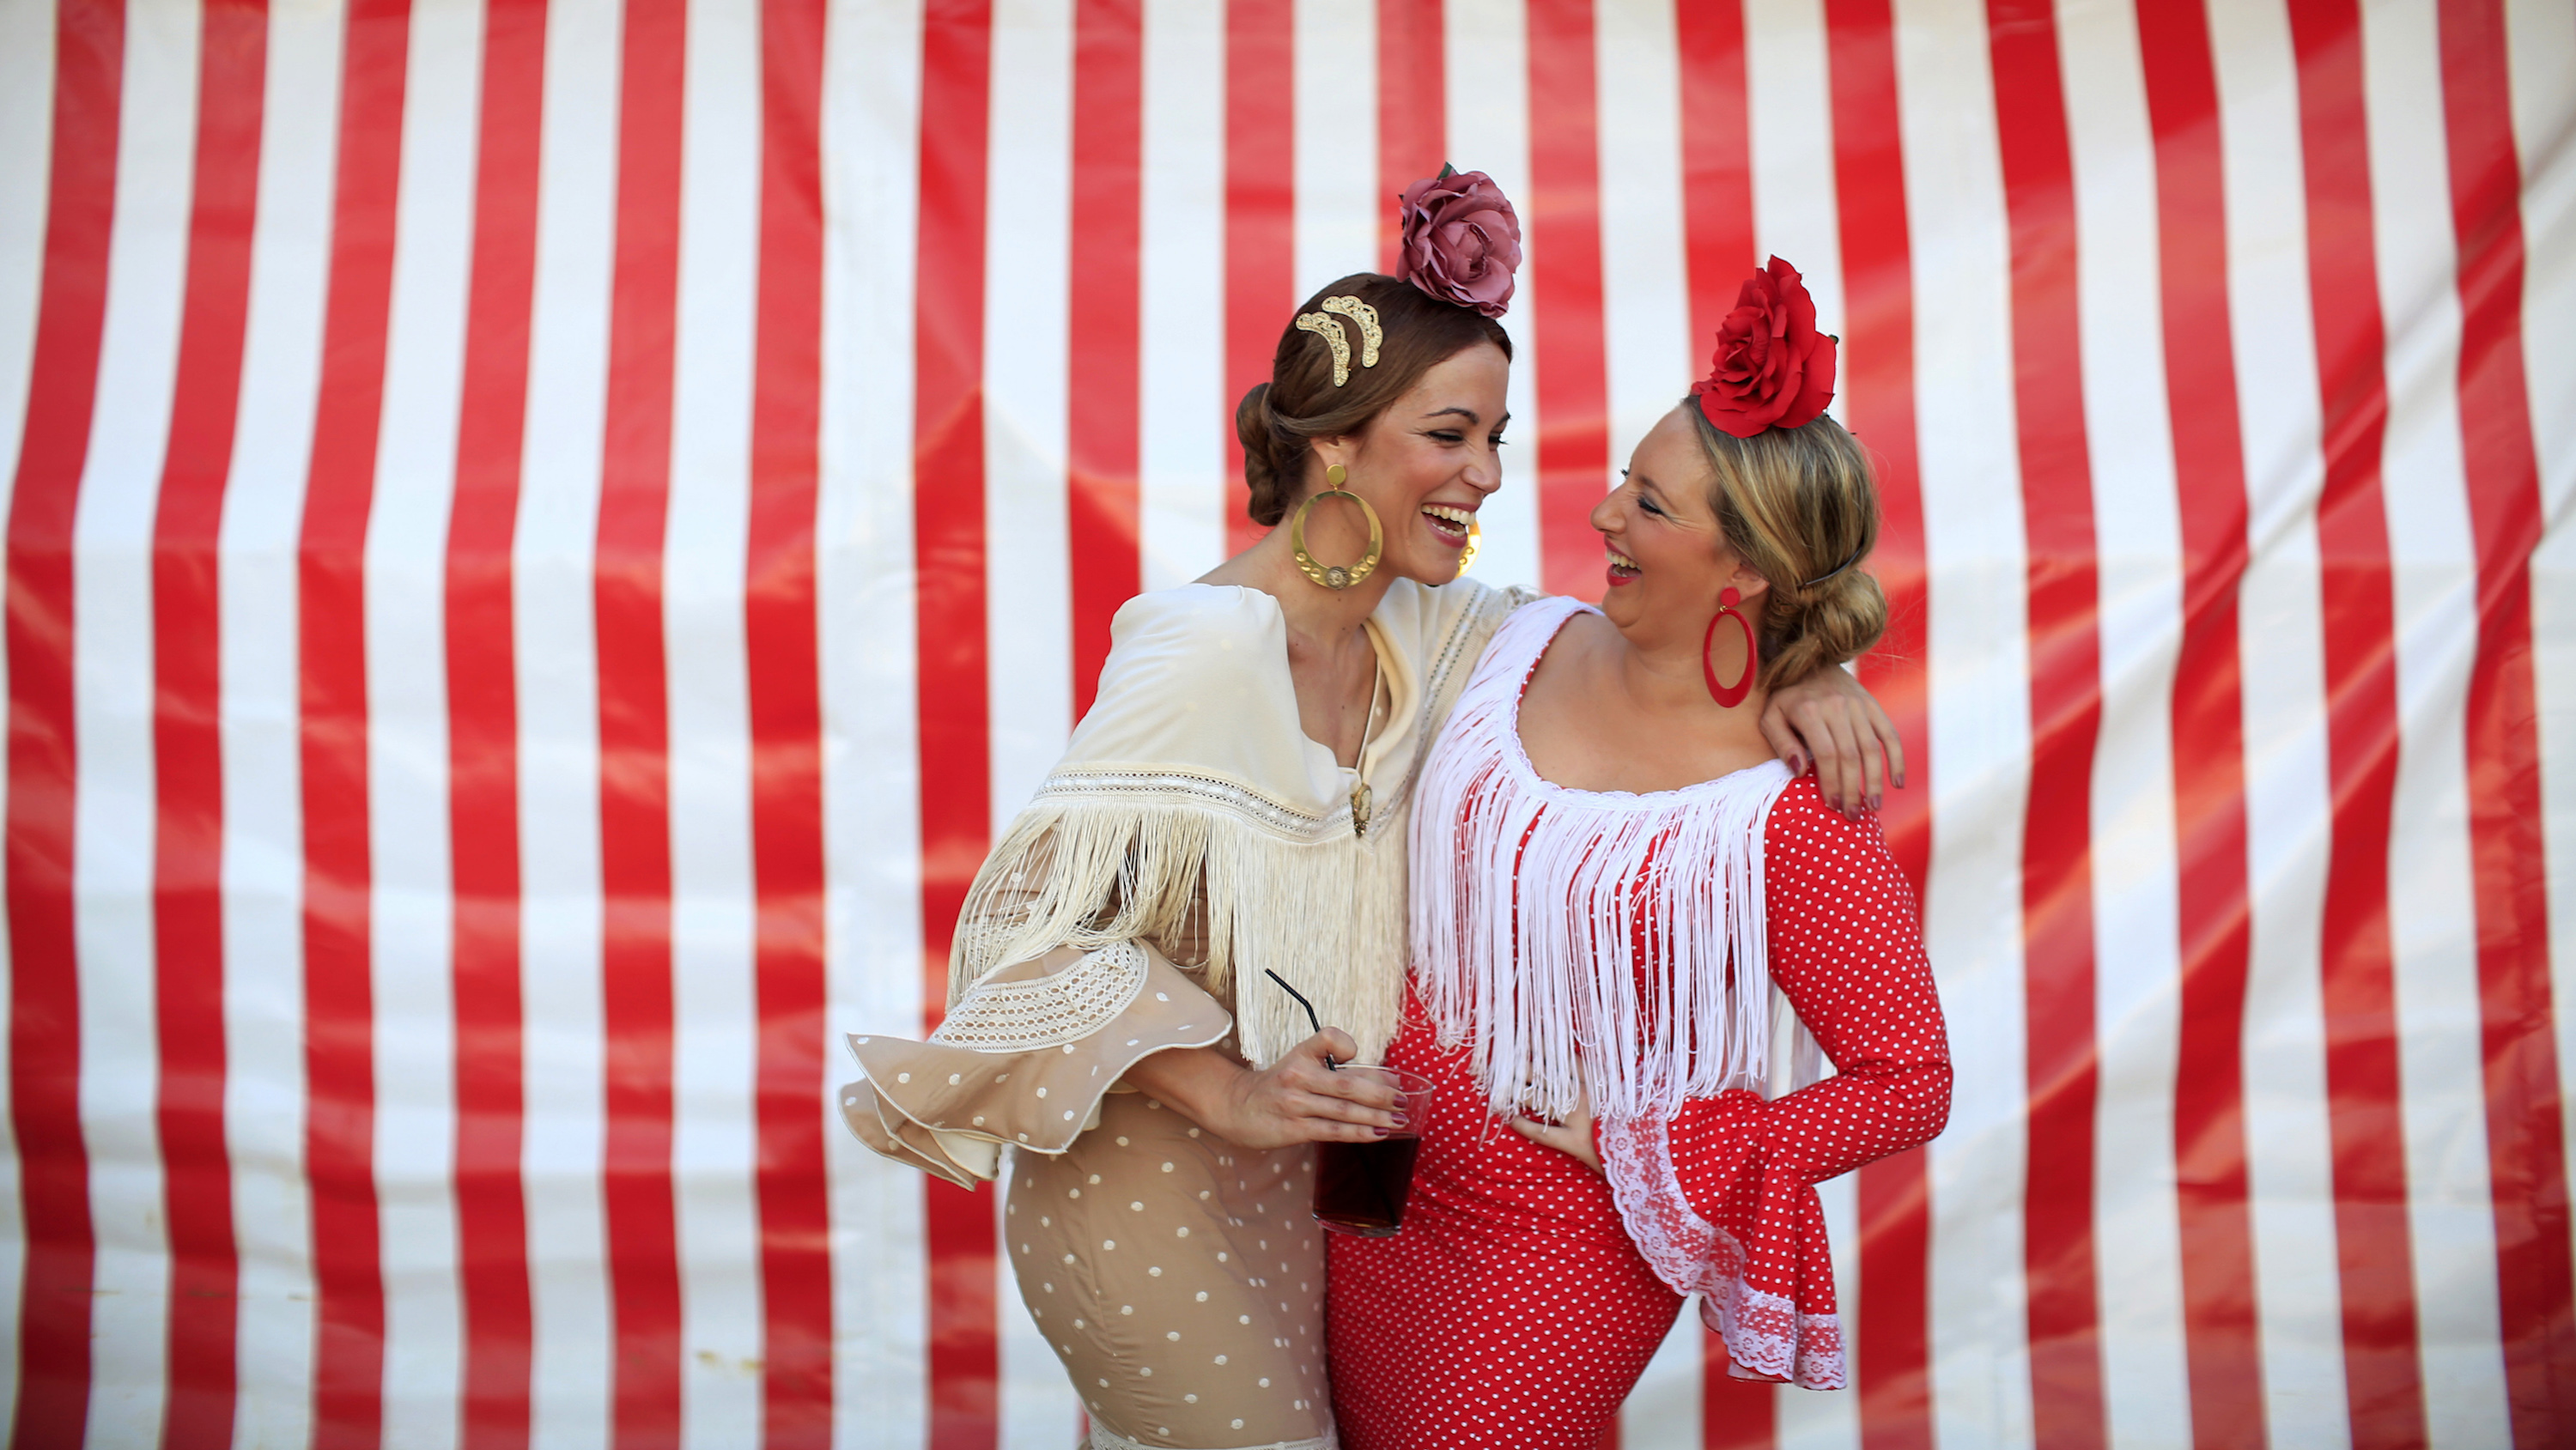 Women wearing typical Sevillana outfits laugh during the traditional Feria de Abril (April fair) in the Andalusian capital of Seville